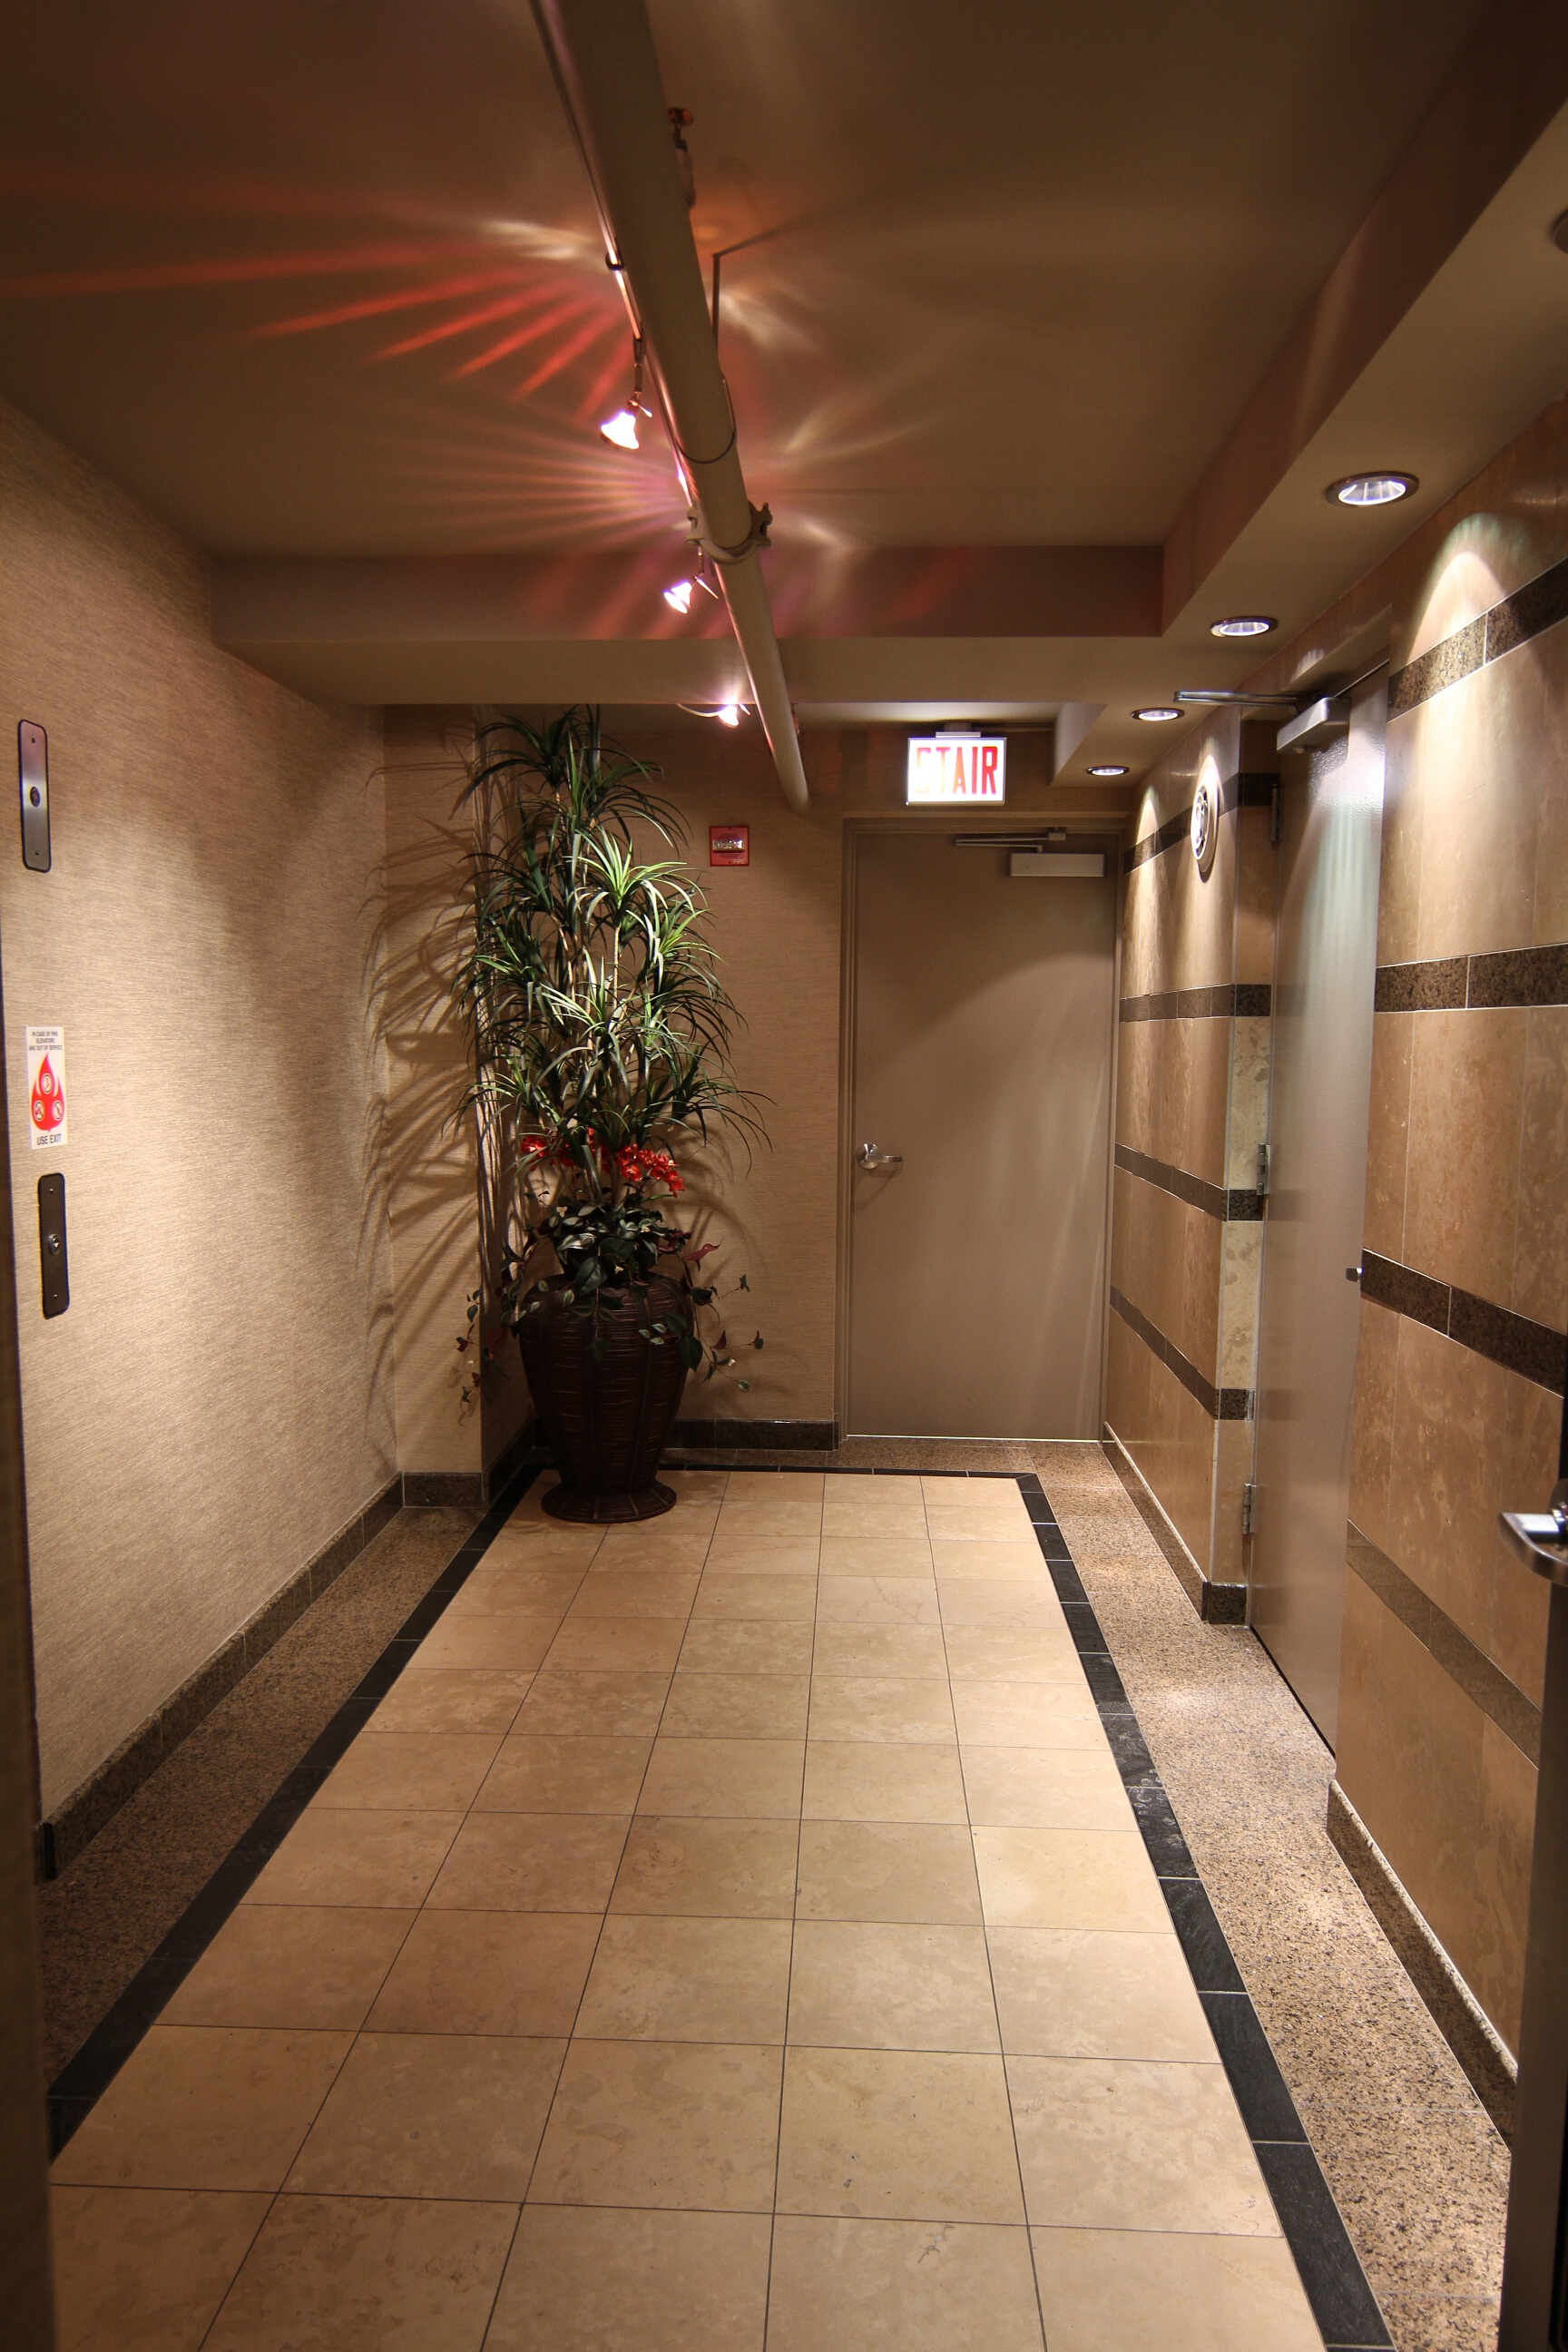 Lancaster Vestibule areas to Lounge and Fitness Center